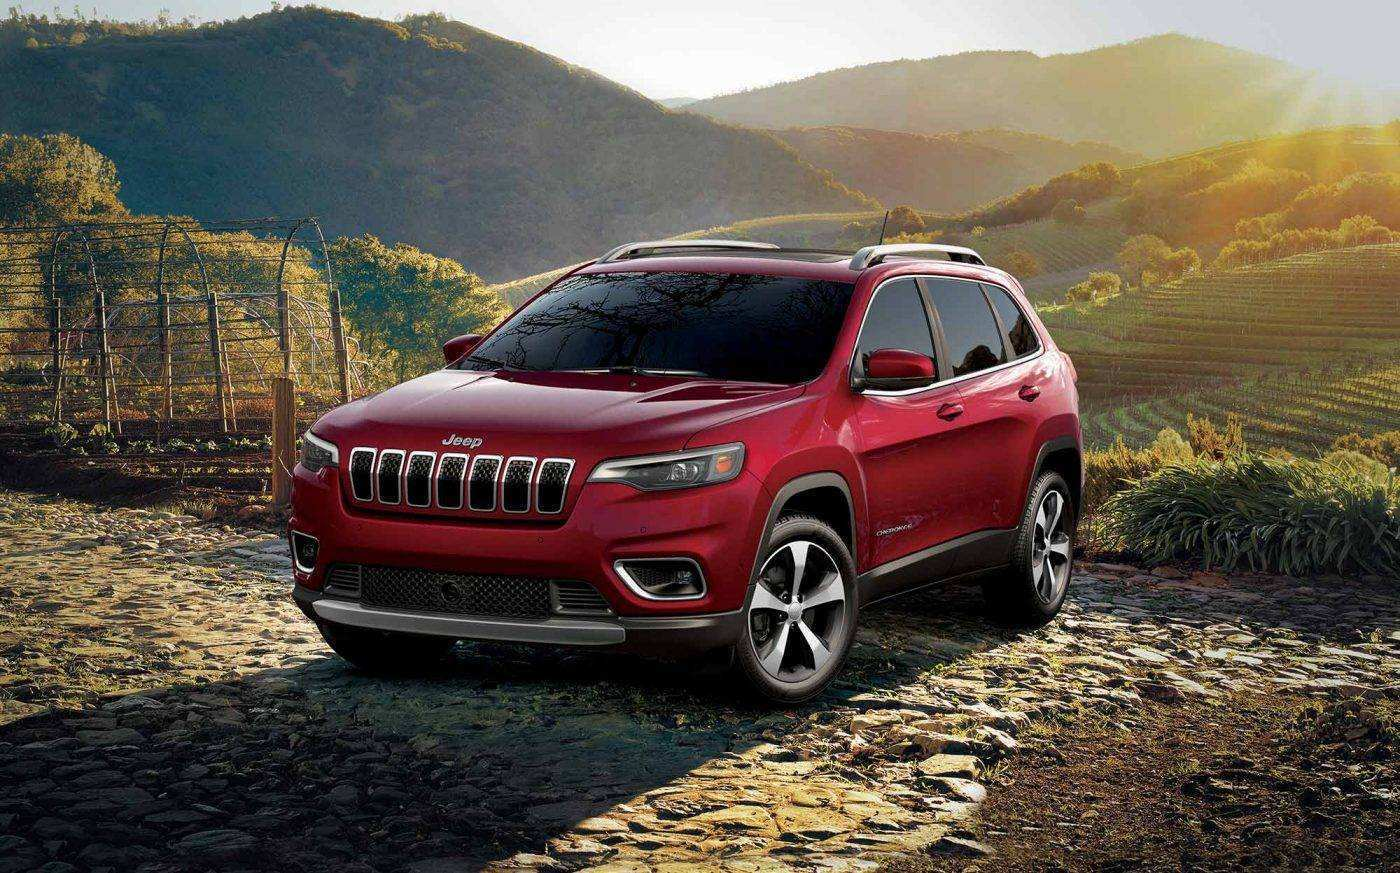 60 Best Review Difference Between 2018 And 2019 Jeep Cherokee Release Date Review for Difference Between 2018 And 2019 Jeep Cherokee Release Date